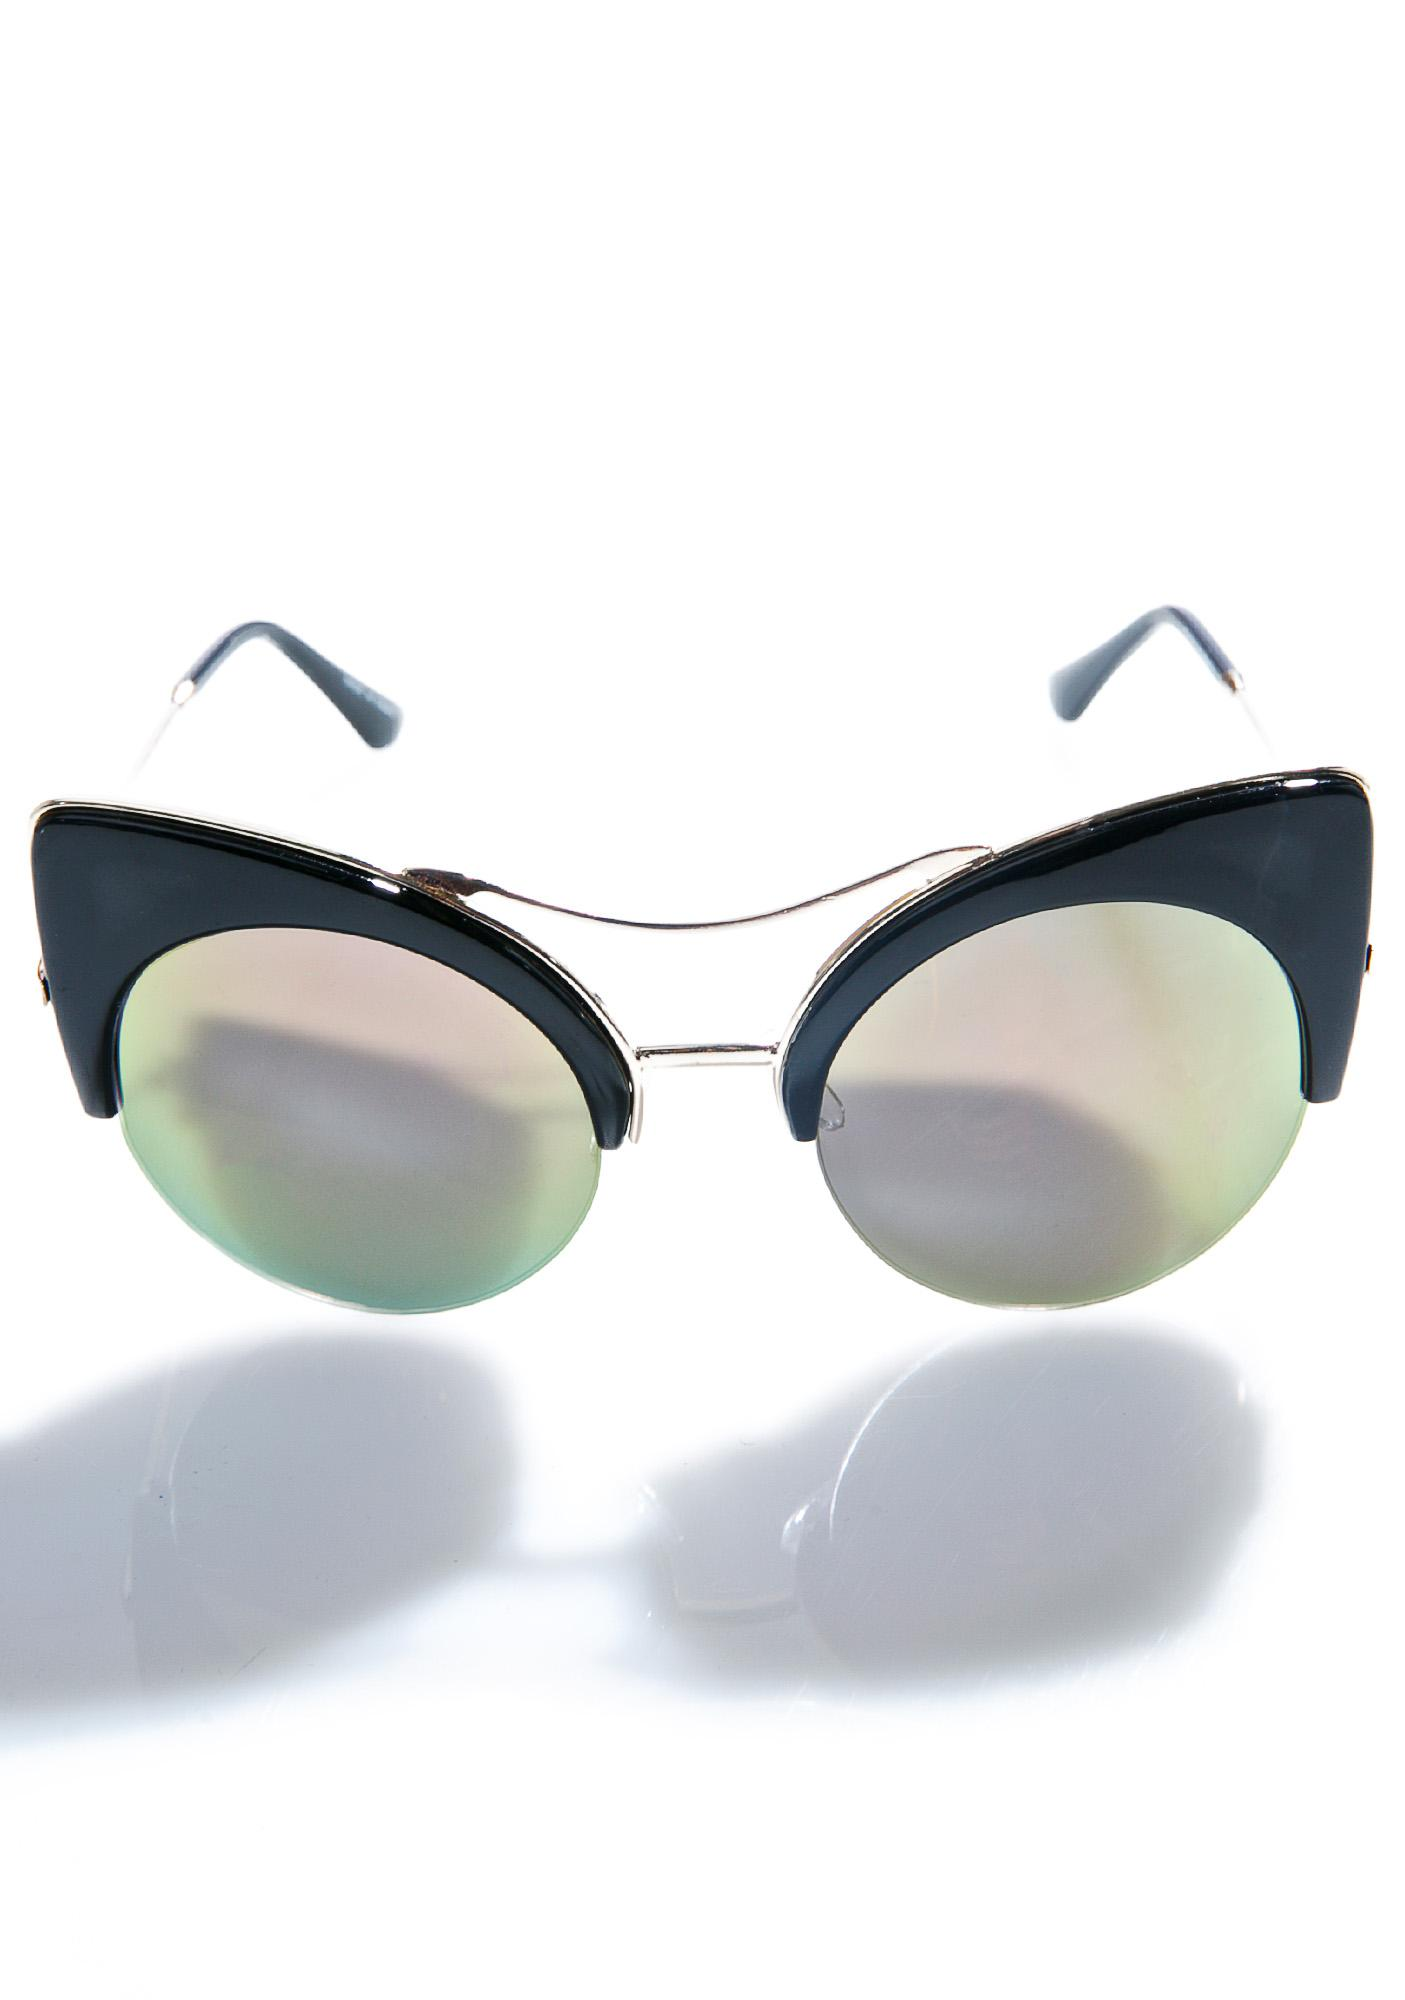 Sharpshooter Sunglasses